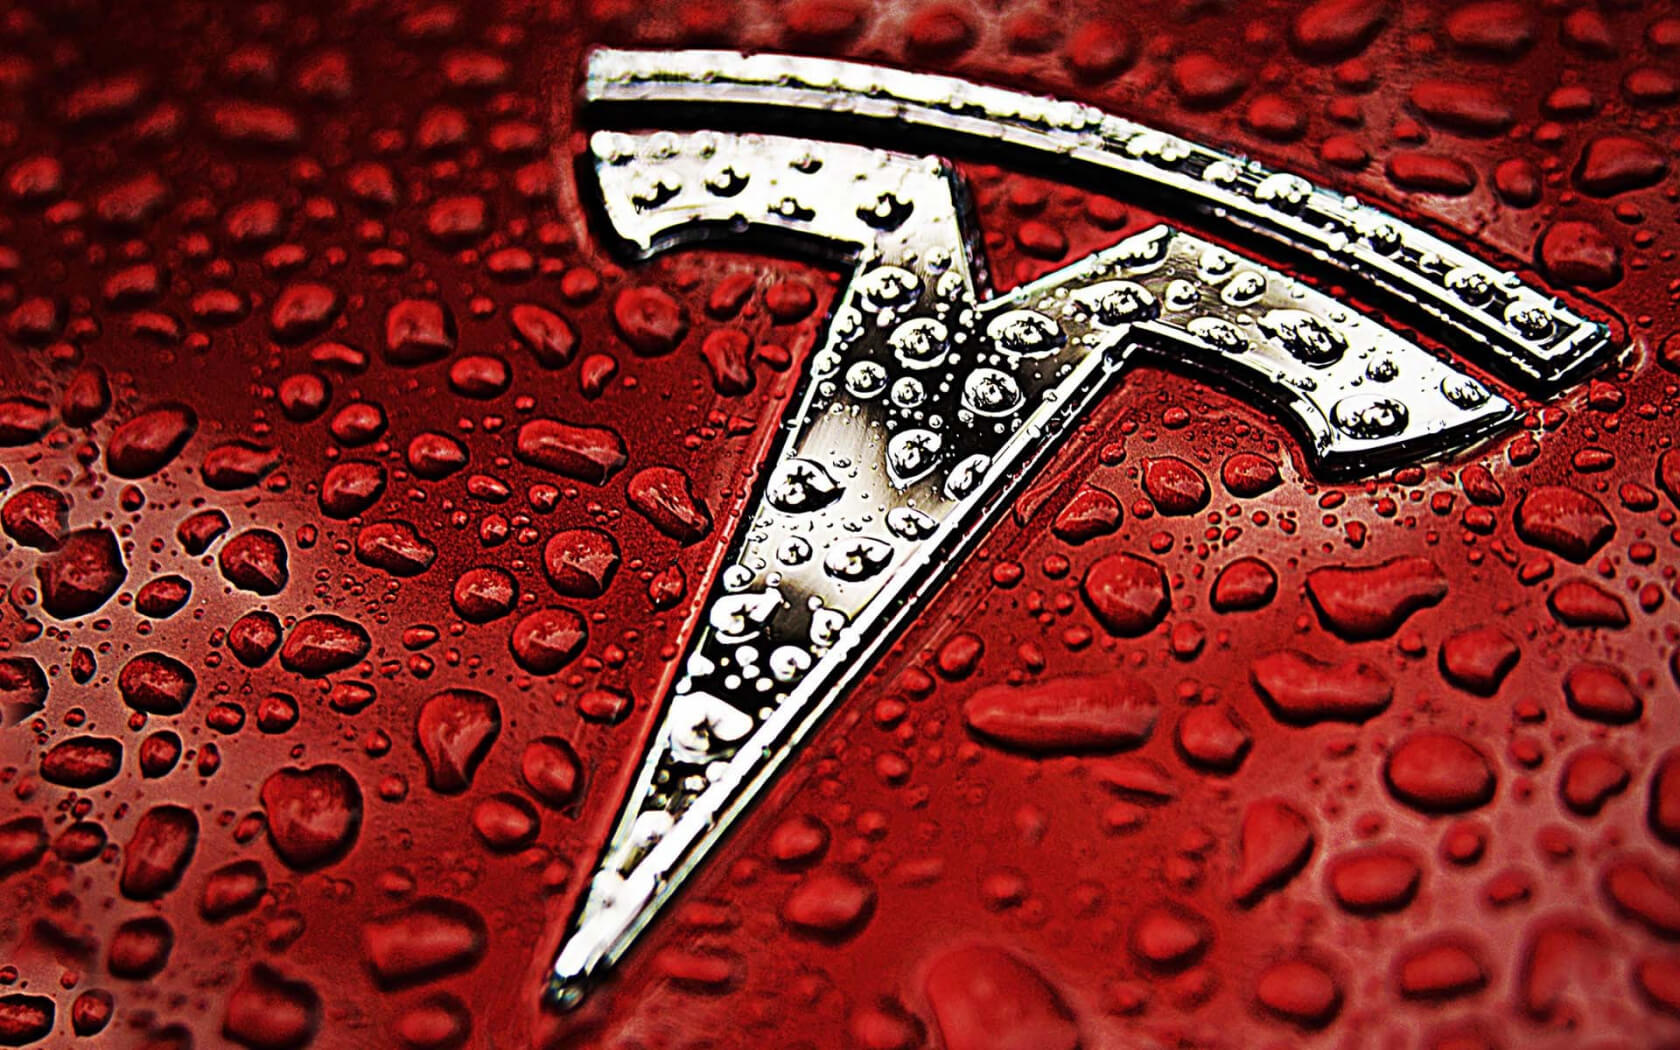 Tesla's cloud was used by hackers to mine cryptocurrency